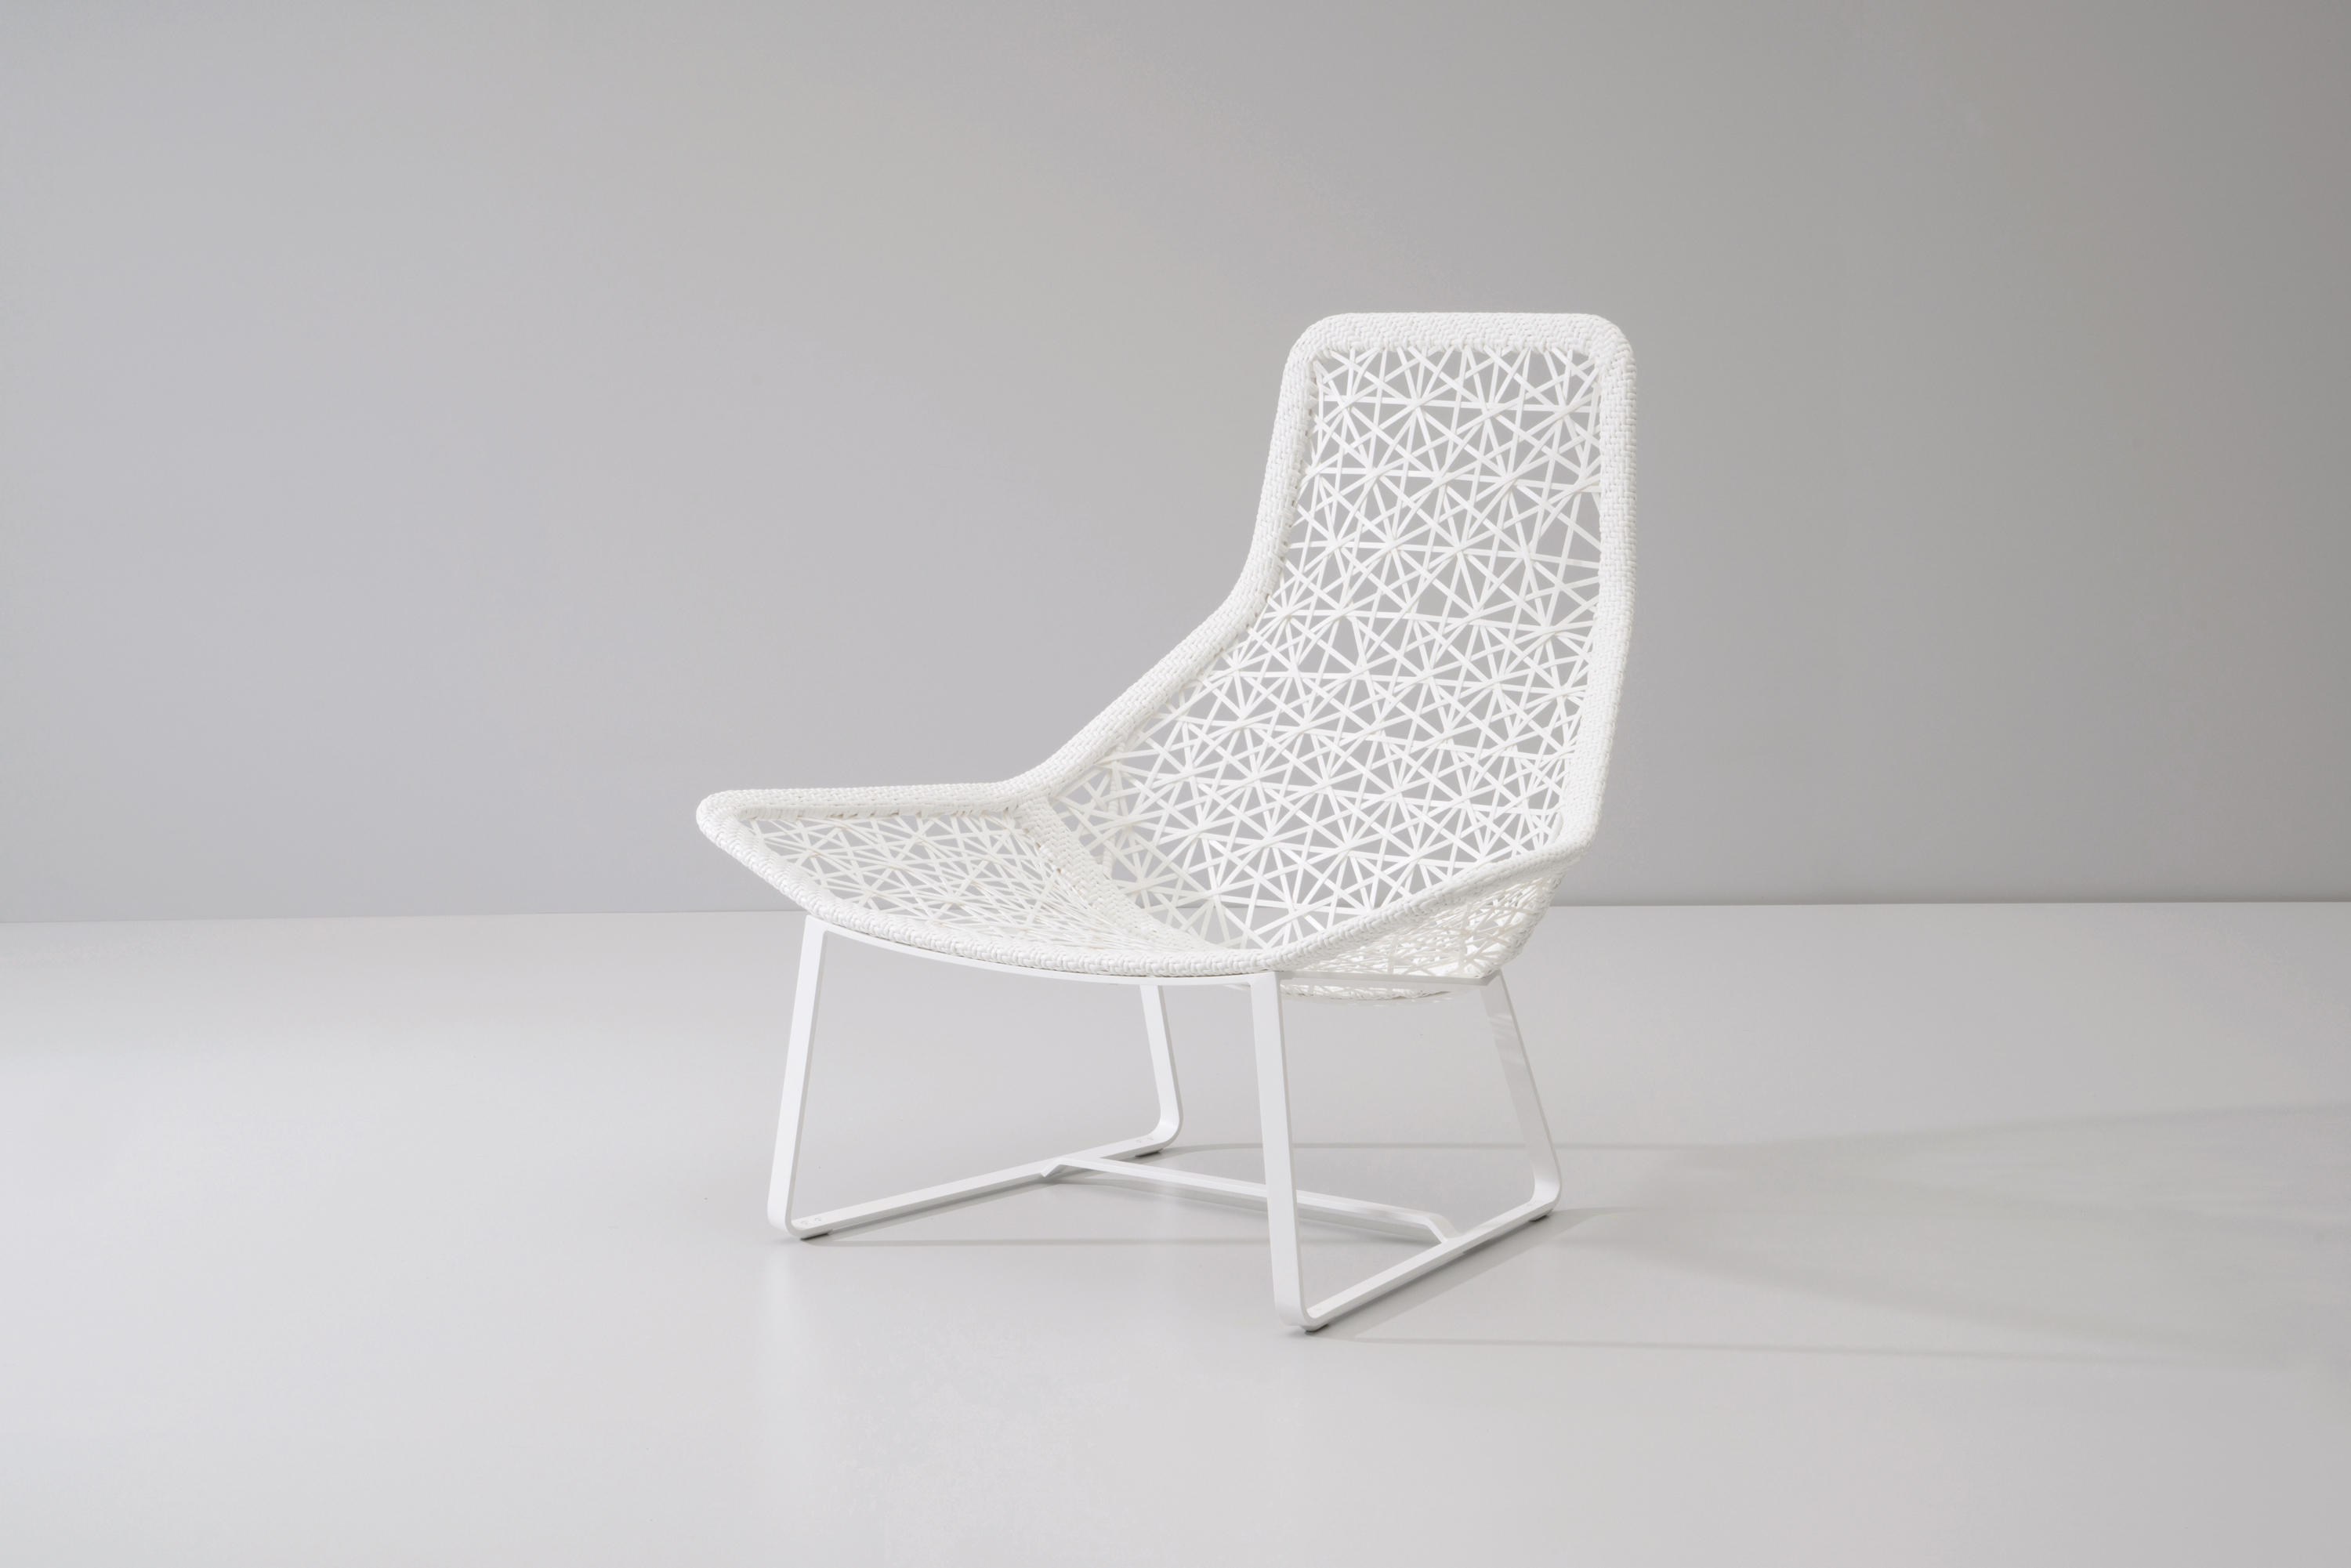 Maia relax armchair garden armchairs from kettal for Kettal maia